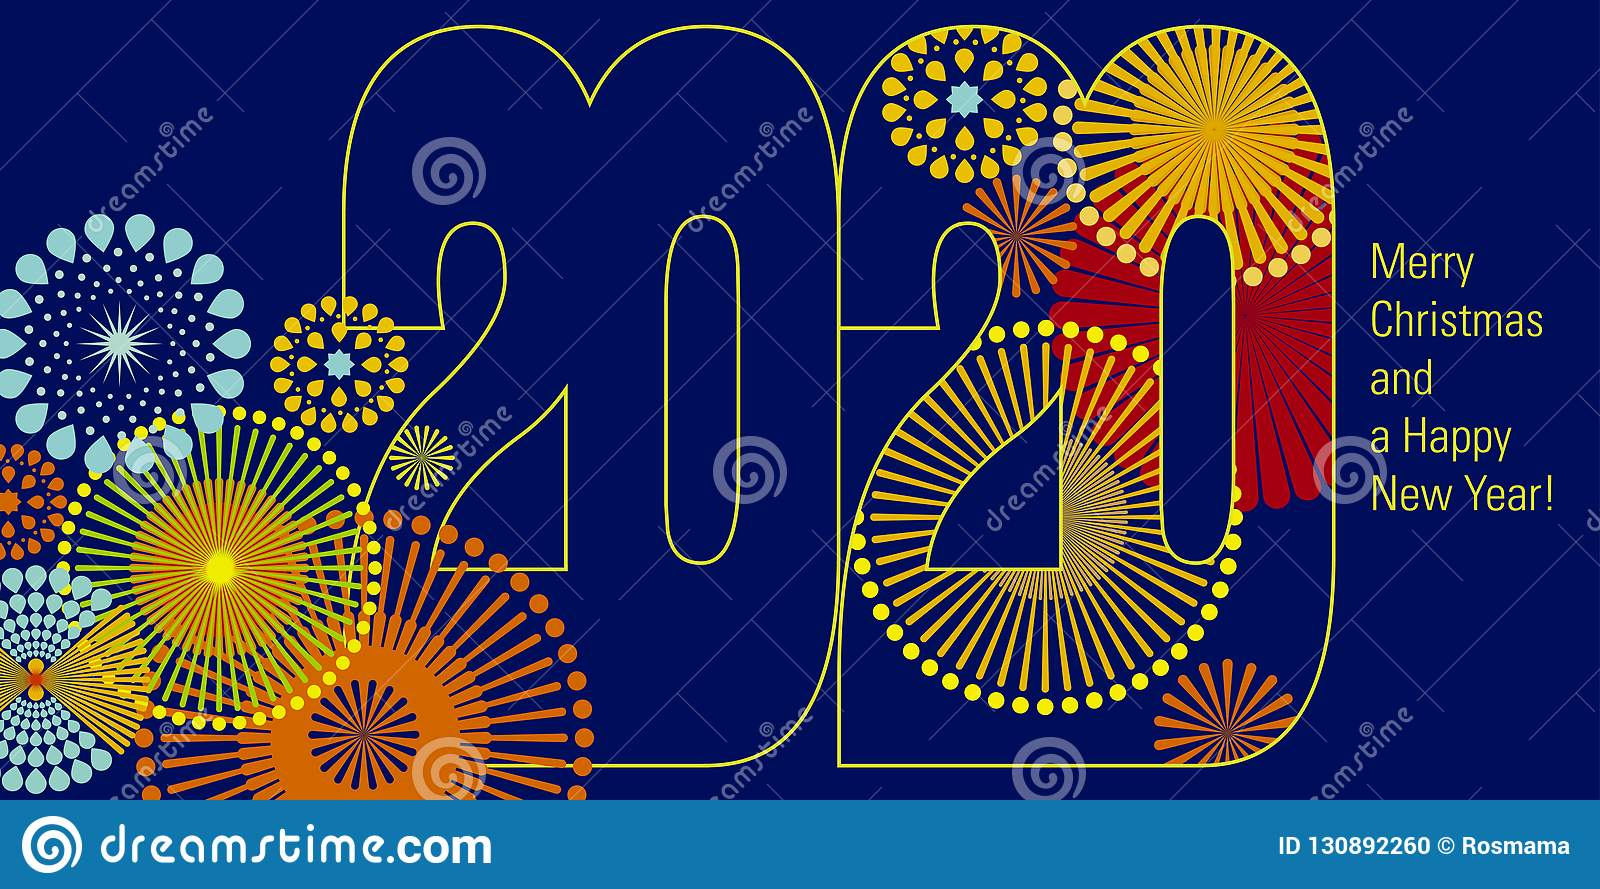 Happy New Year 2020 Vector Background Stock Illustration Illustration Of 2020 Event 130892260